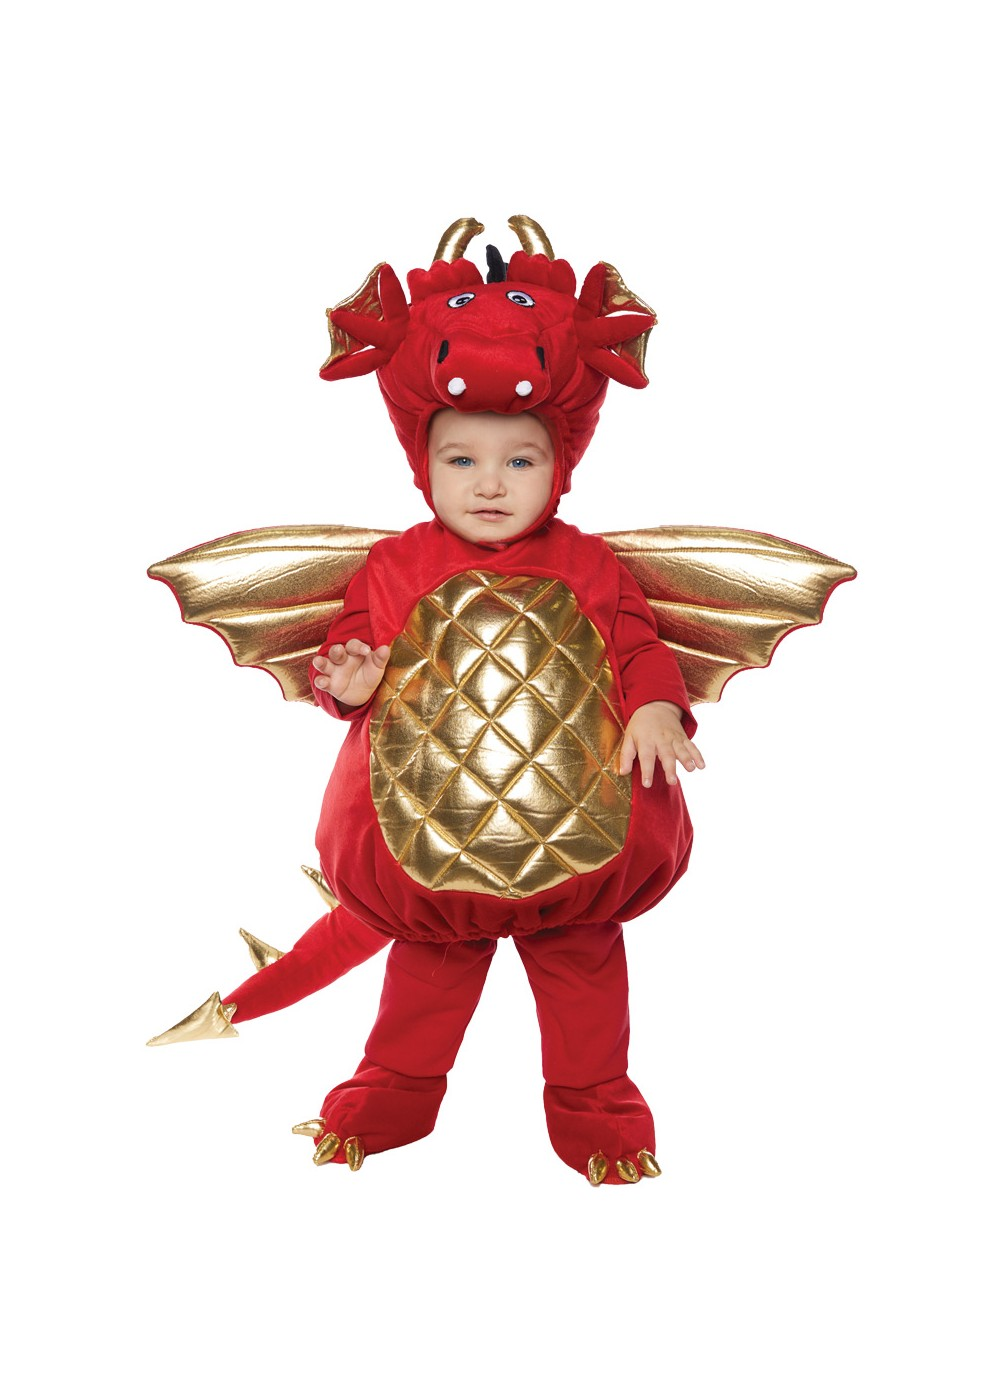 Fiery Red Dragon Plush Baby Costume